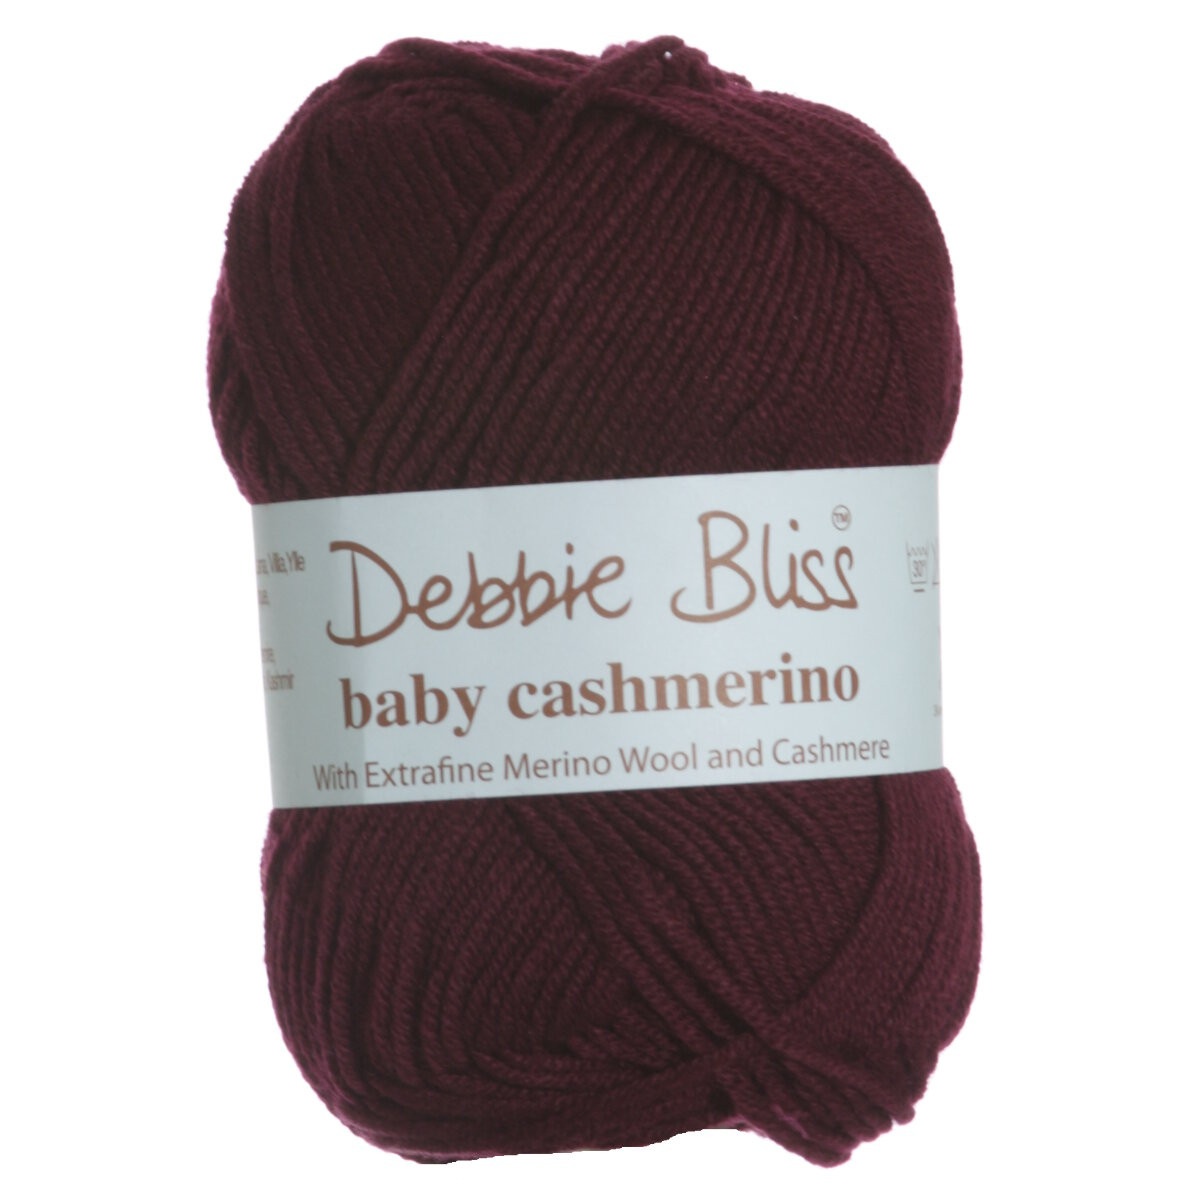 Debbie Bliss Yarn Inspirational Debbie Bliss Baby Cashmerino Yarn 076 Plum Discontinued Of Contemporary 48 Pictures Debbie Bliss Yarn